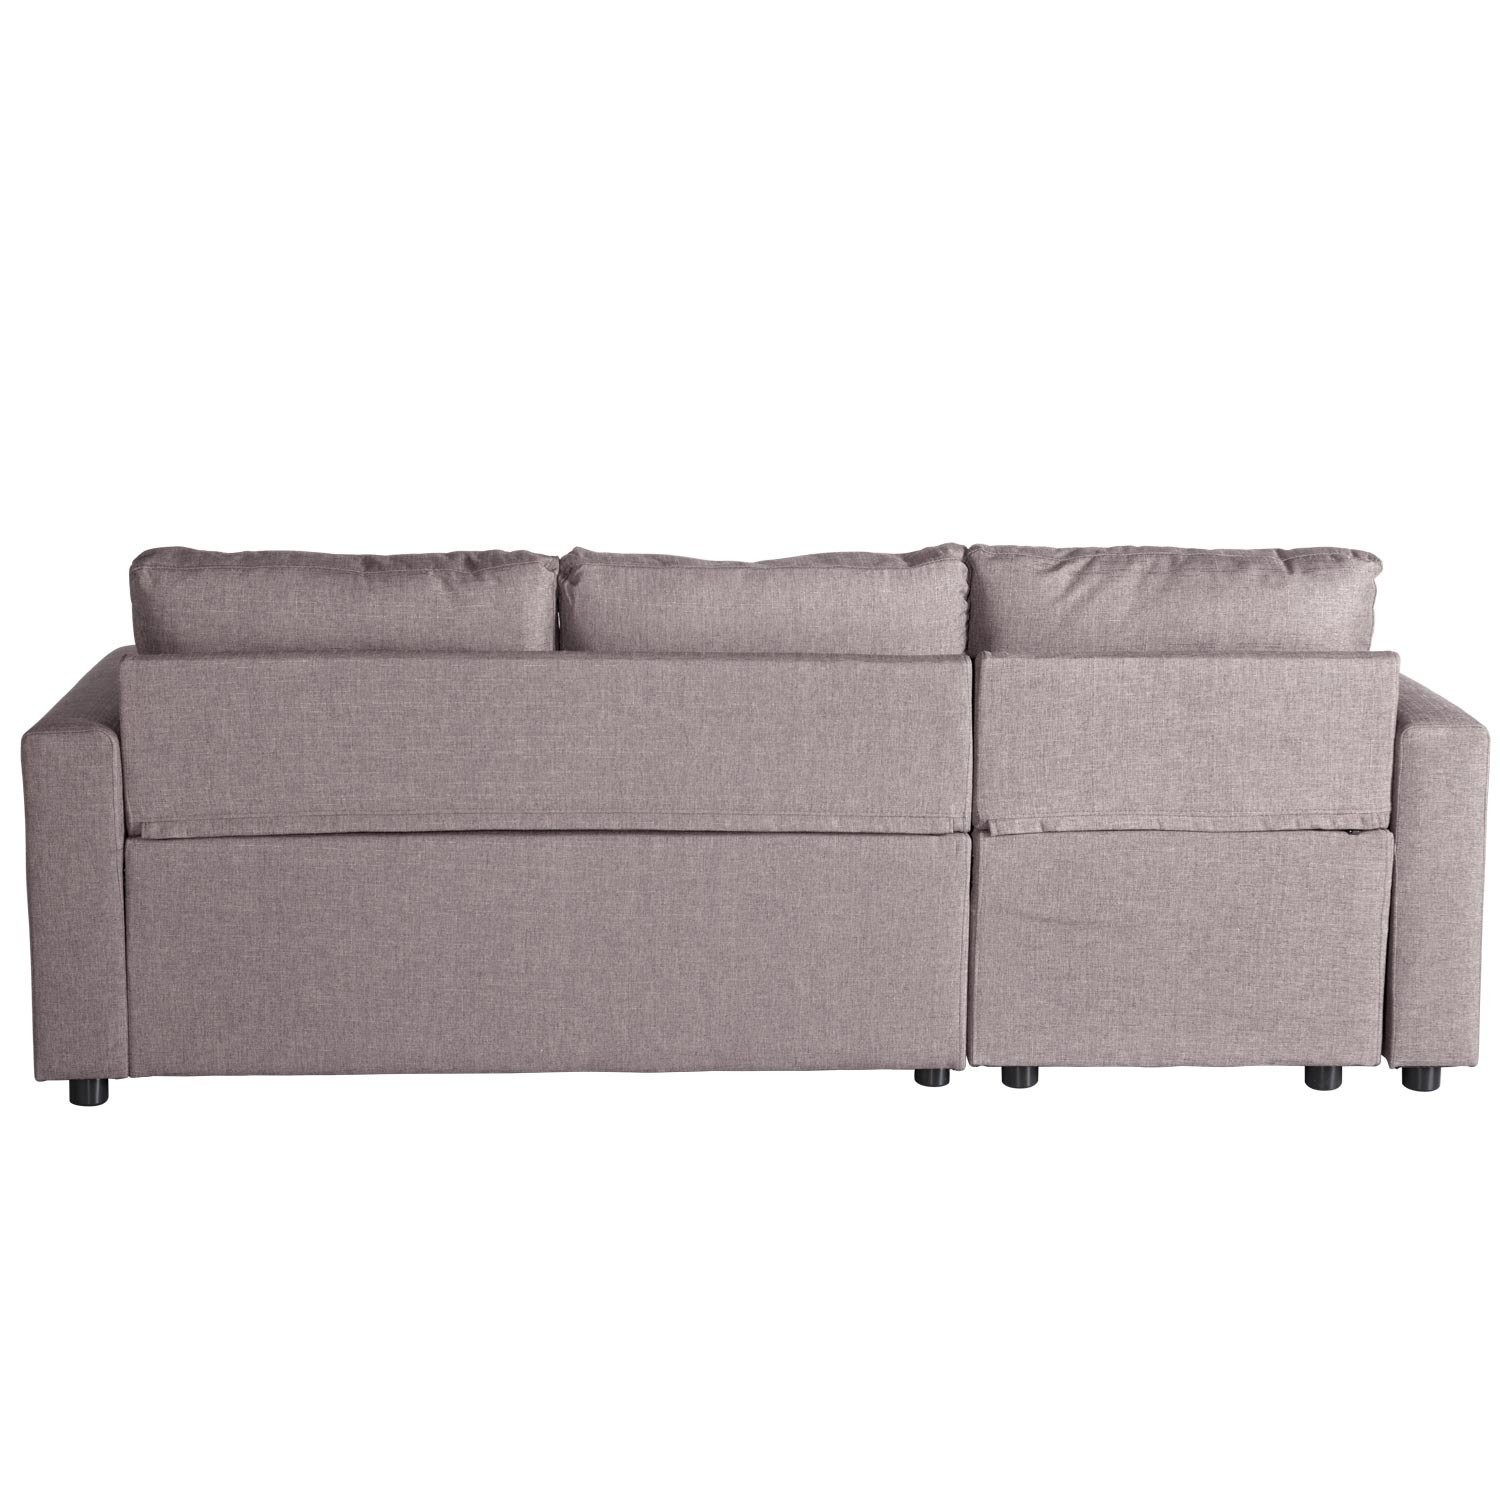 Chaise Longue Cama Baratos Maravilloso Pra Online sofá Cama Chaise Longue Adara Barato Of Chaise Longue Cama Baratos Mejor sofa Chaise Longue Barato Long with 1 Cama Segunda Mano